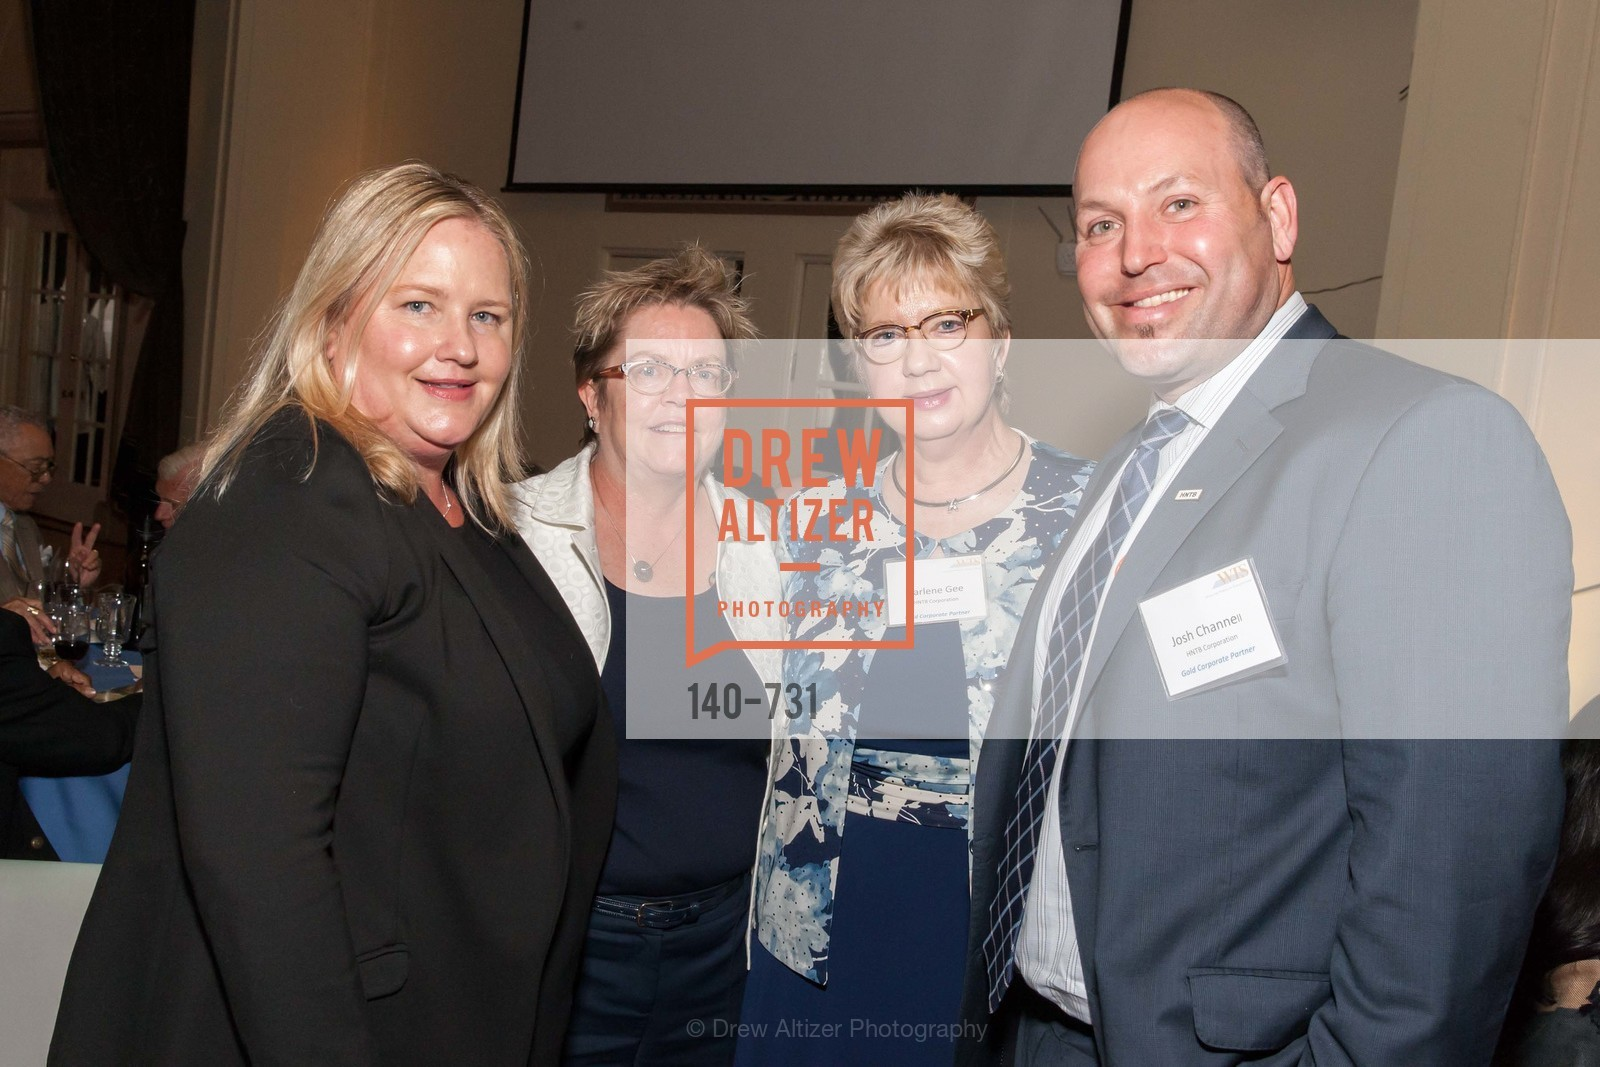 Michele DiFrancia, Iris Starr, Darlene Gee, Josh Chanell, WOMEN'S TRANSPORTATION SEMINAR SF Bay Area Chapter Annual Scholarship Awards, US, May 14th, 2015,Drew Altizer, Drew Altizer Photography, full-service agency, private events, San Francisco photographer, photographer california